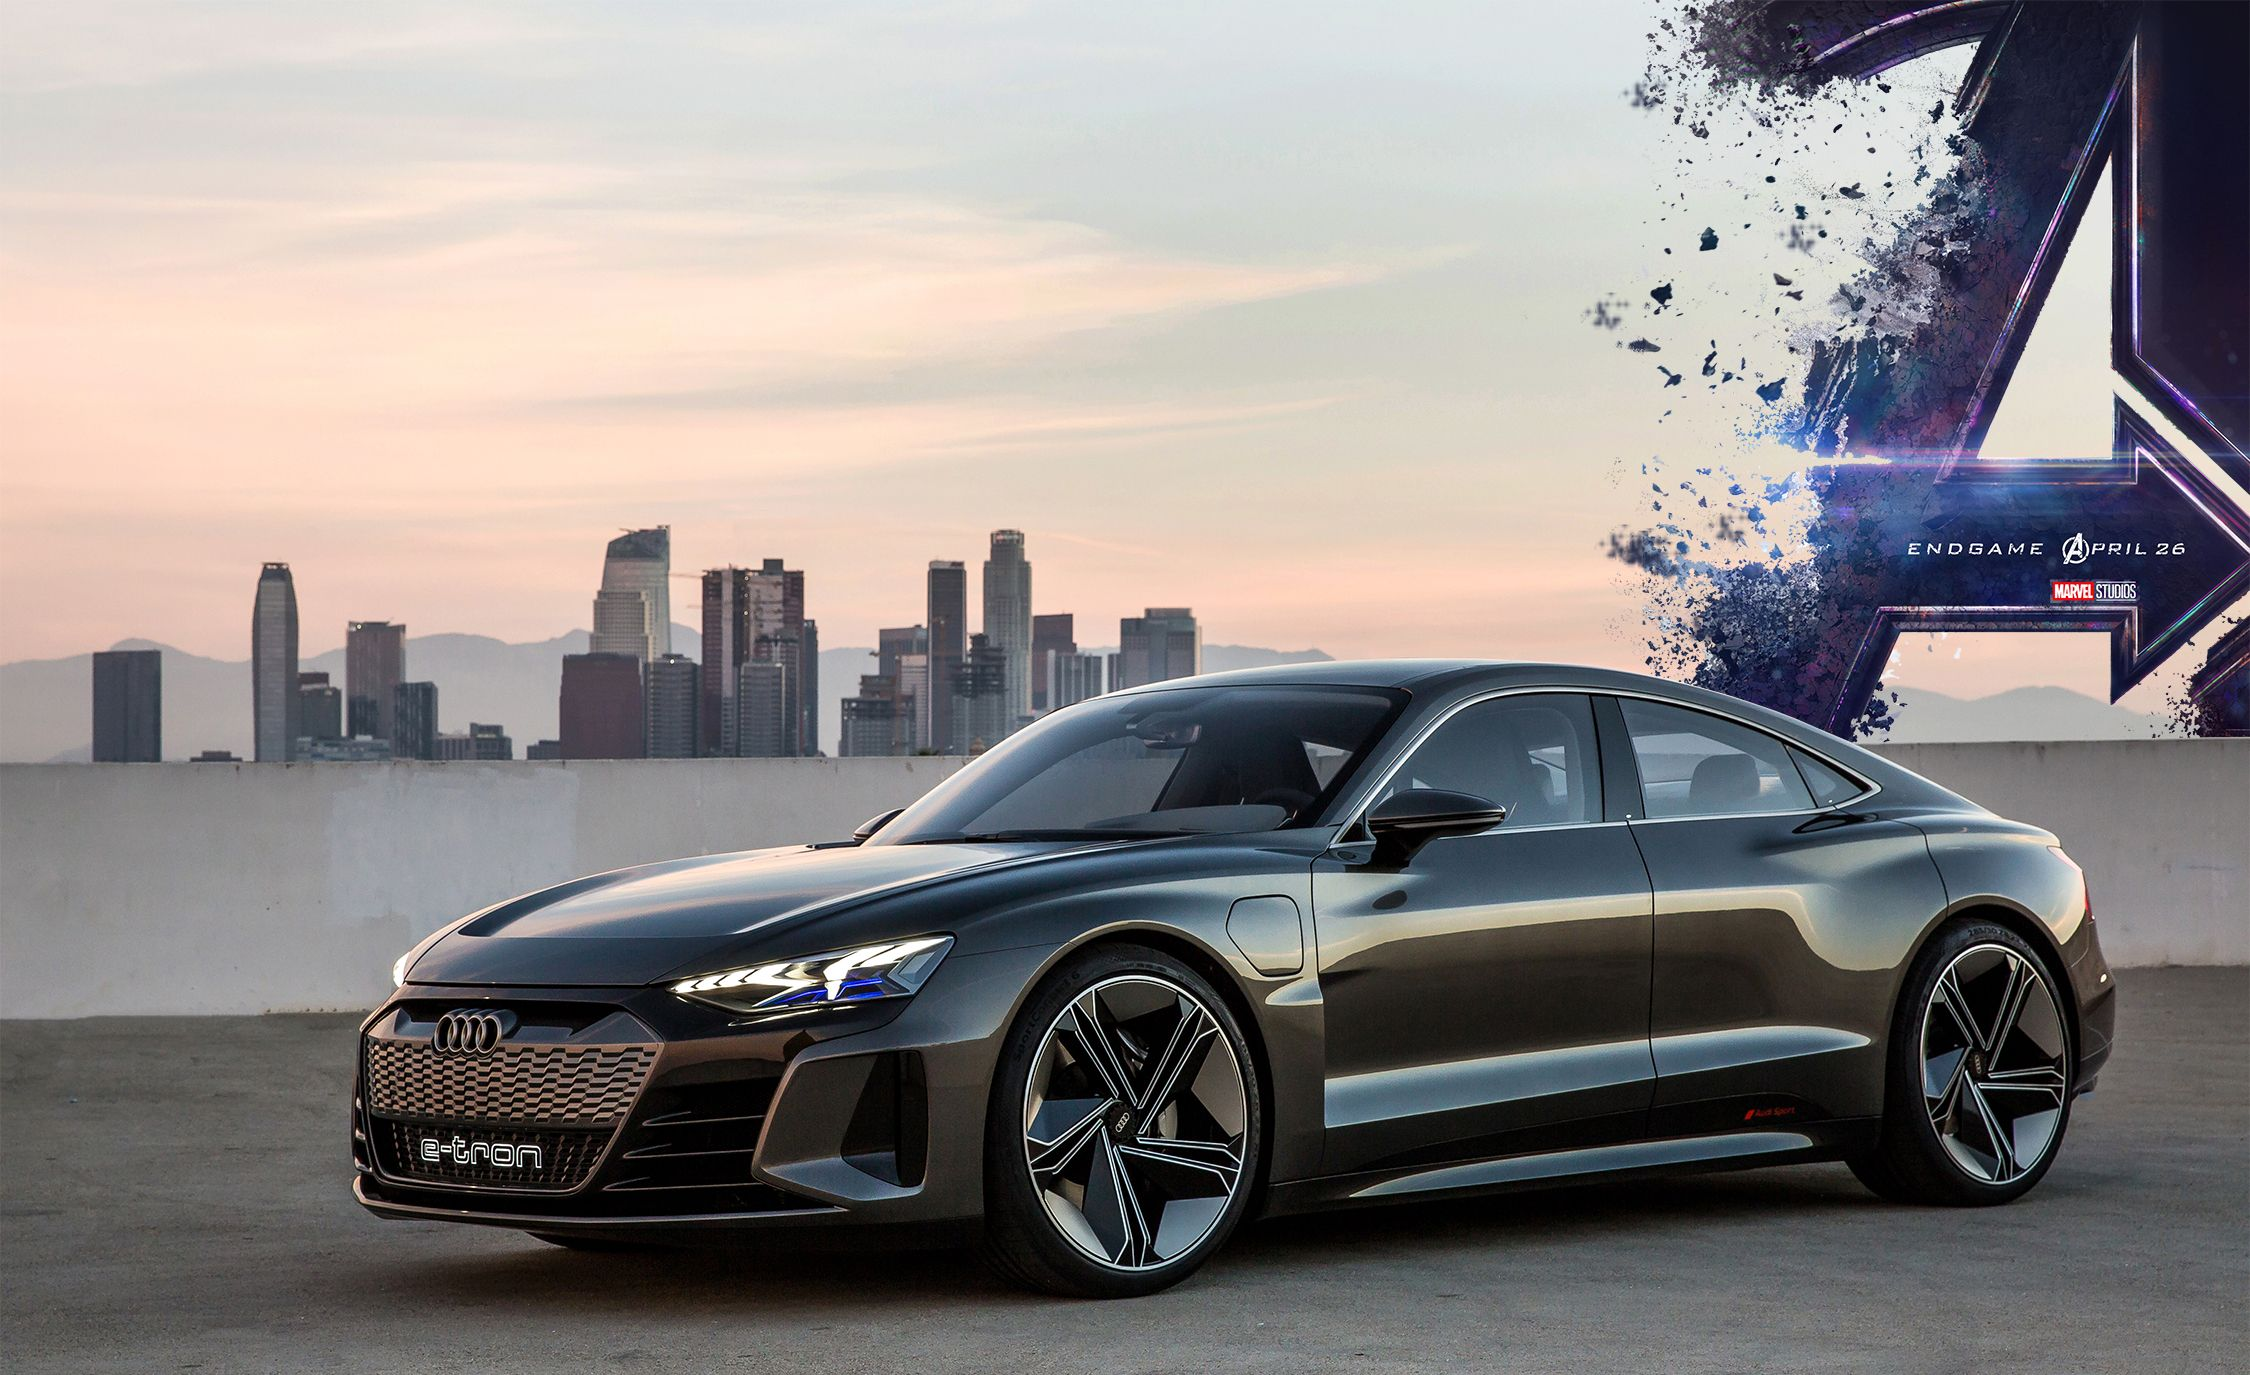 Avengers Endgame Features This Audi Concept Car New Marvel Movie